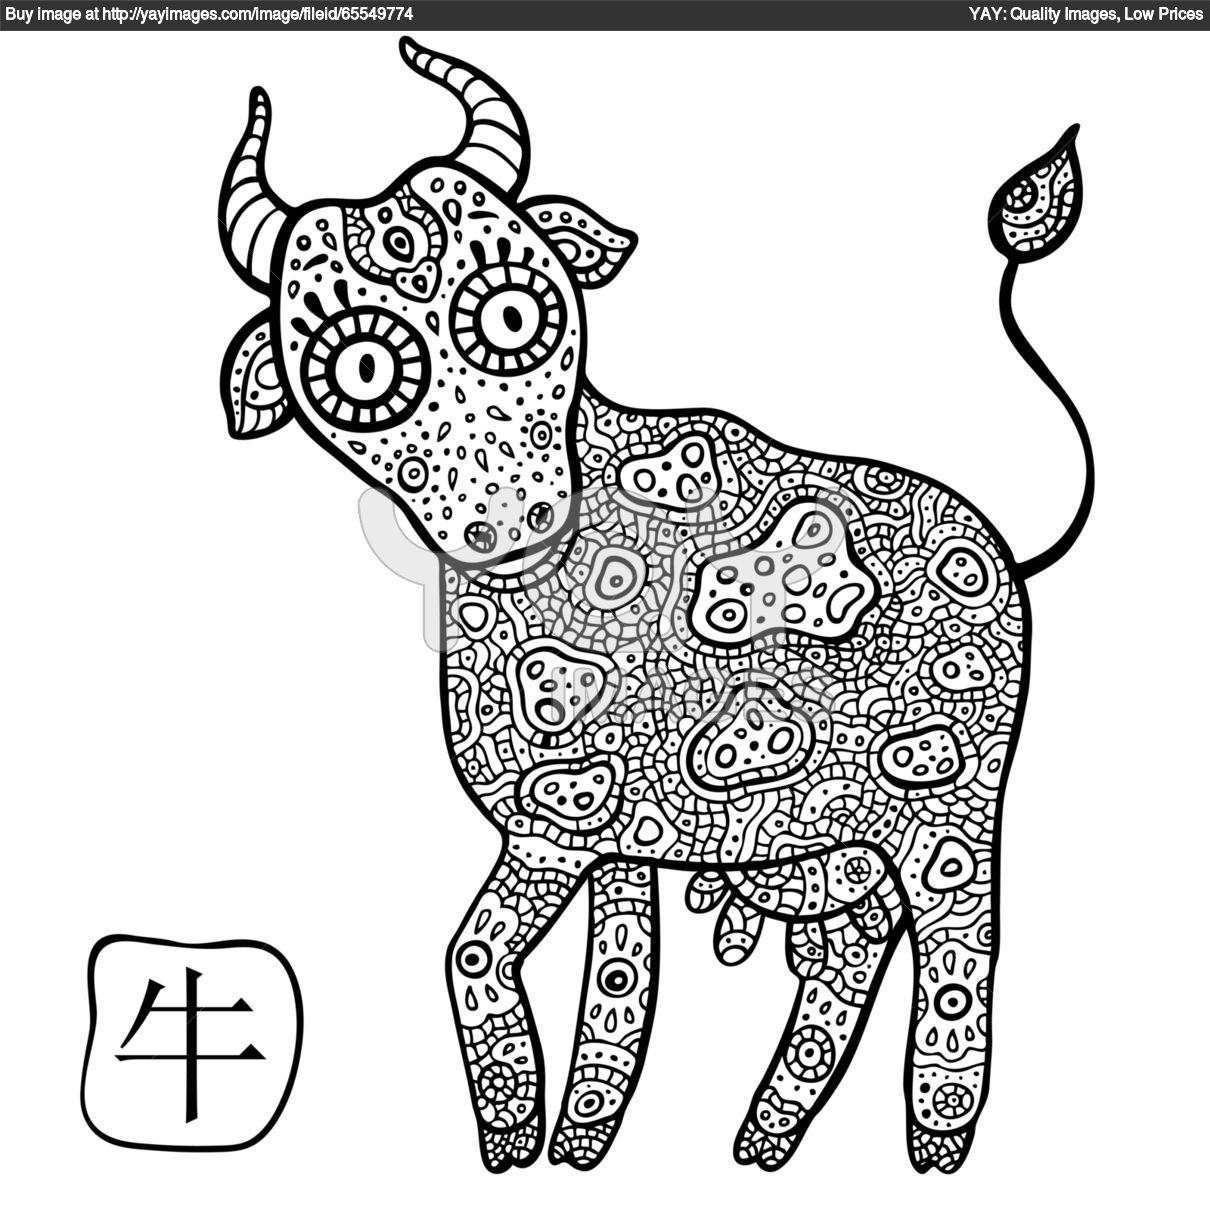 Chinese zodiac signs coloring pages printable dibujos chinese zodiac signs coloring pages printable buycottarizona Image collections